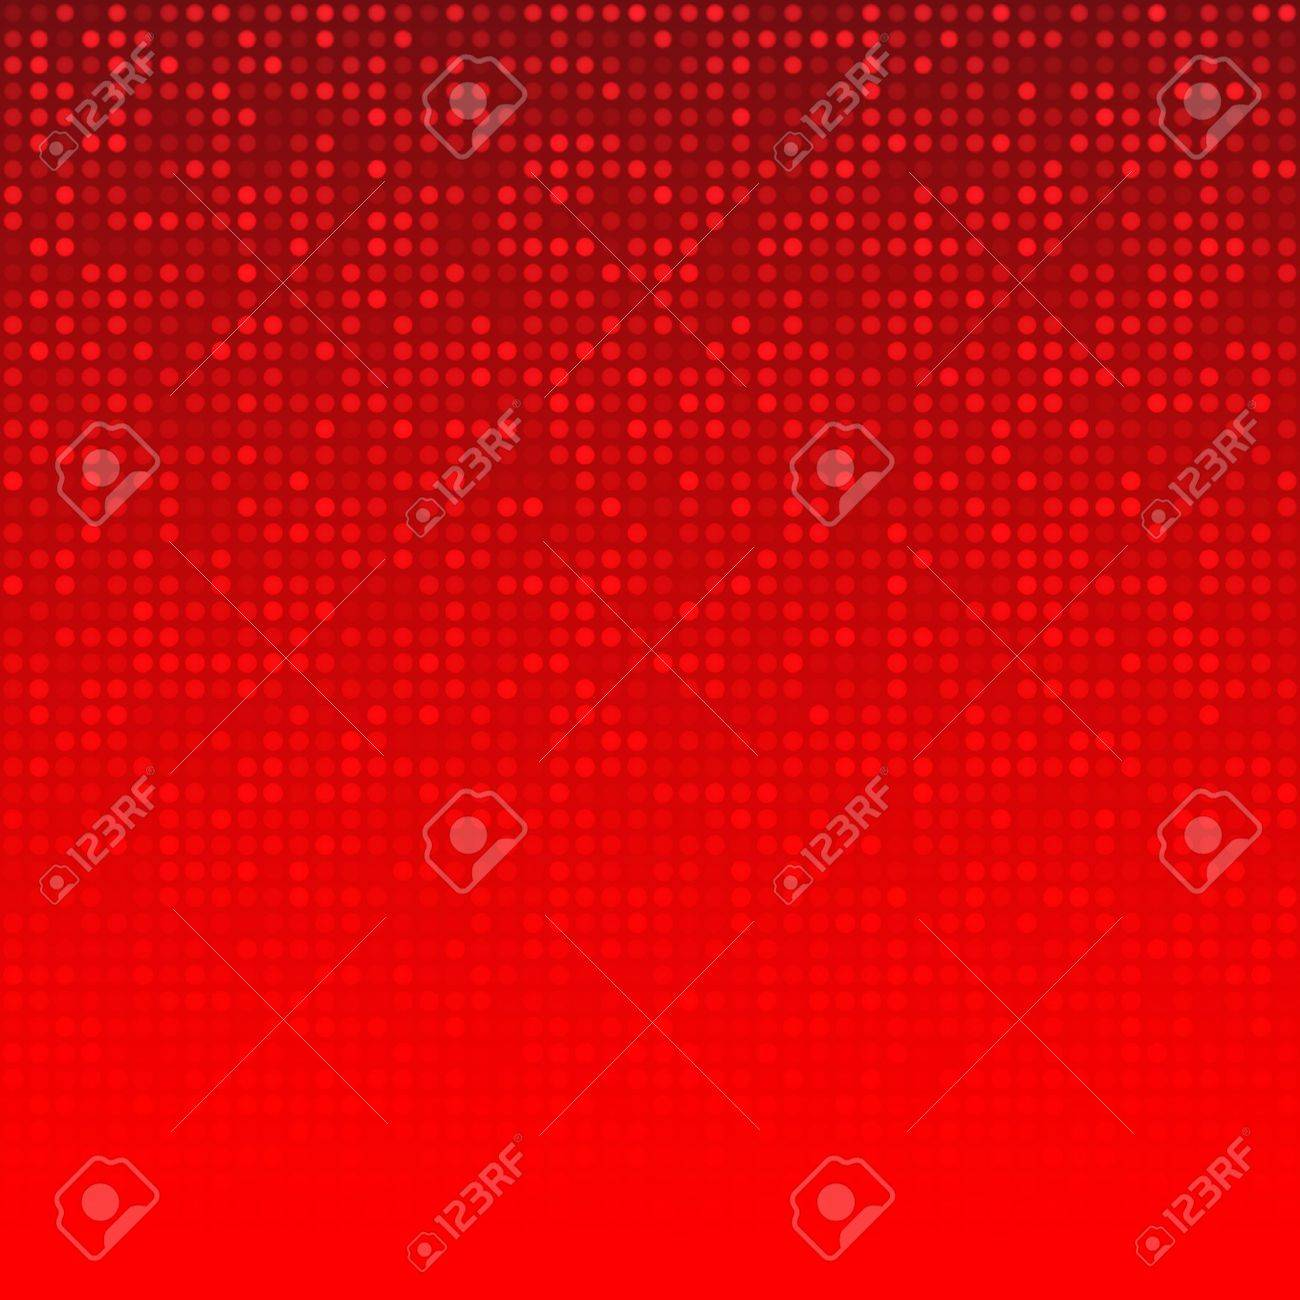 Abstract Red Technology Background Stock Vector - 19485775